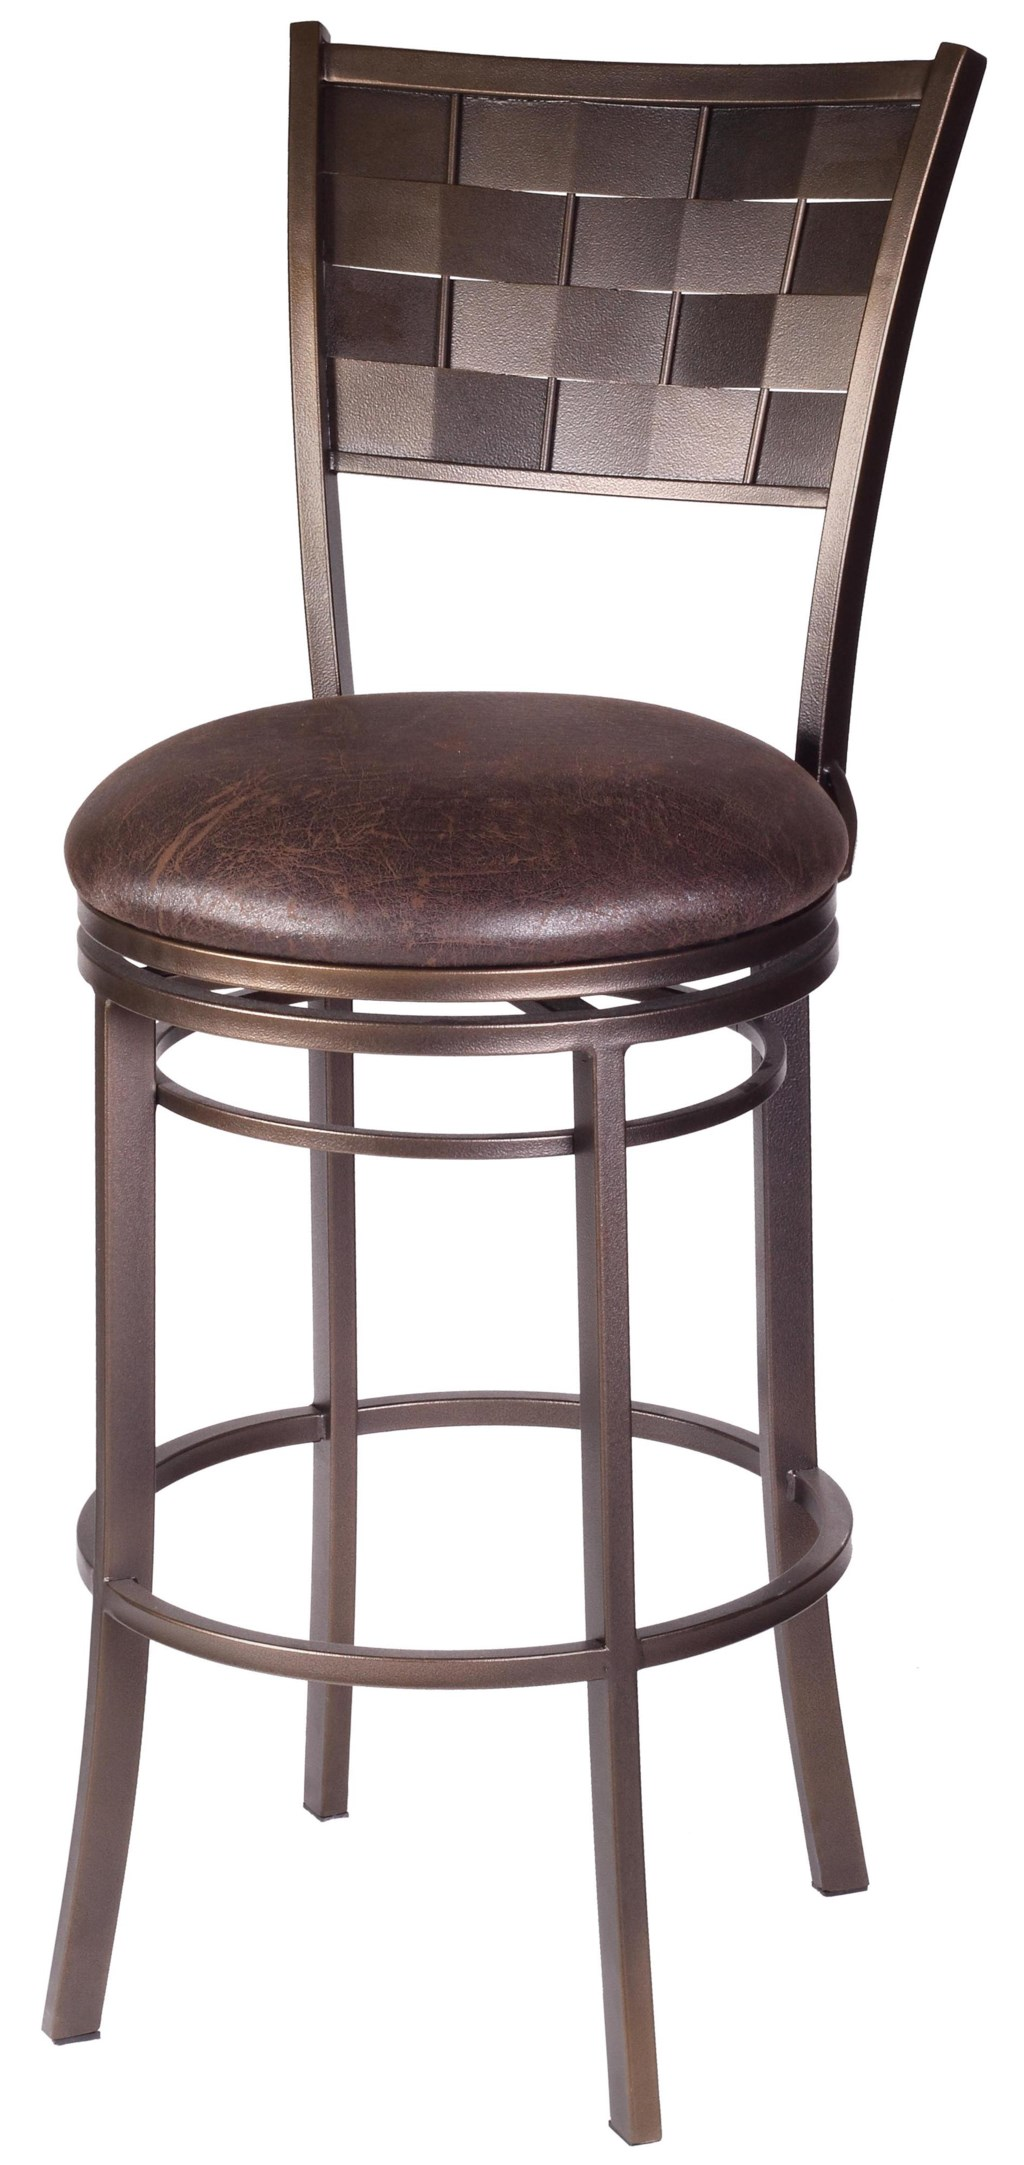 Cym Furniture Barstools Riviera 24 Barstool Conlins Furniture